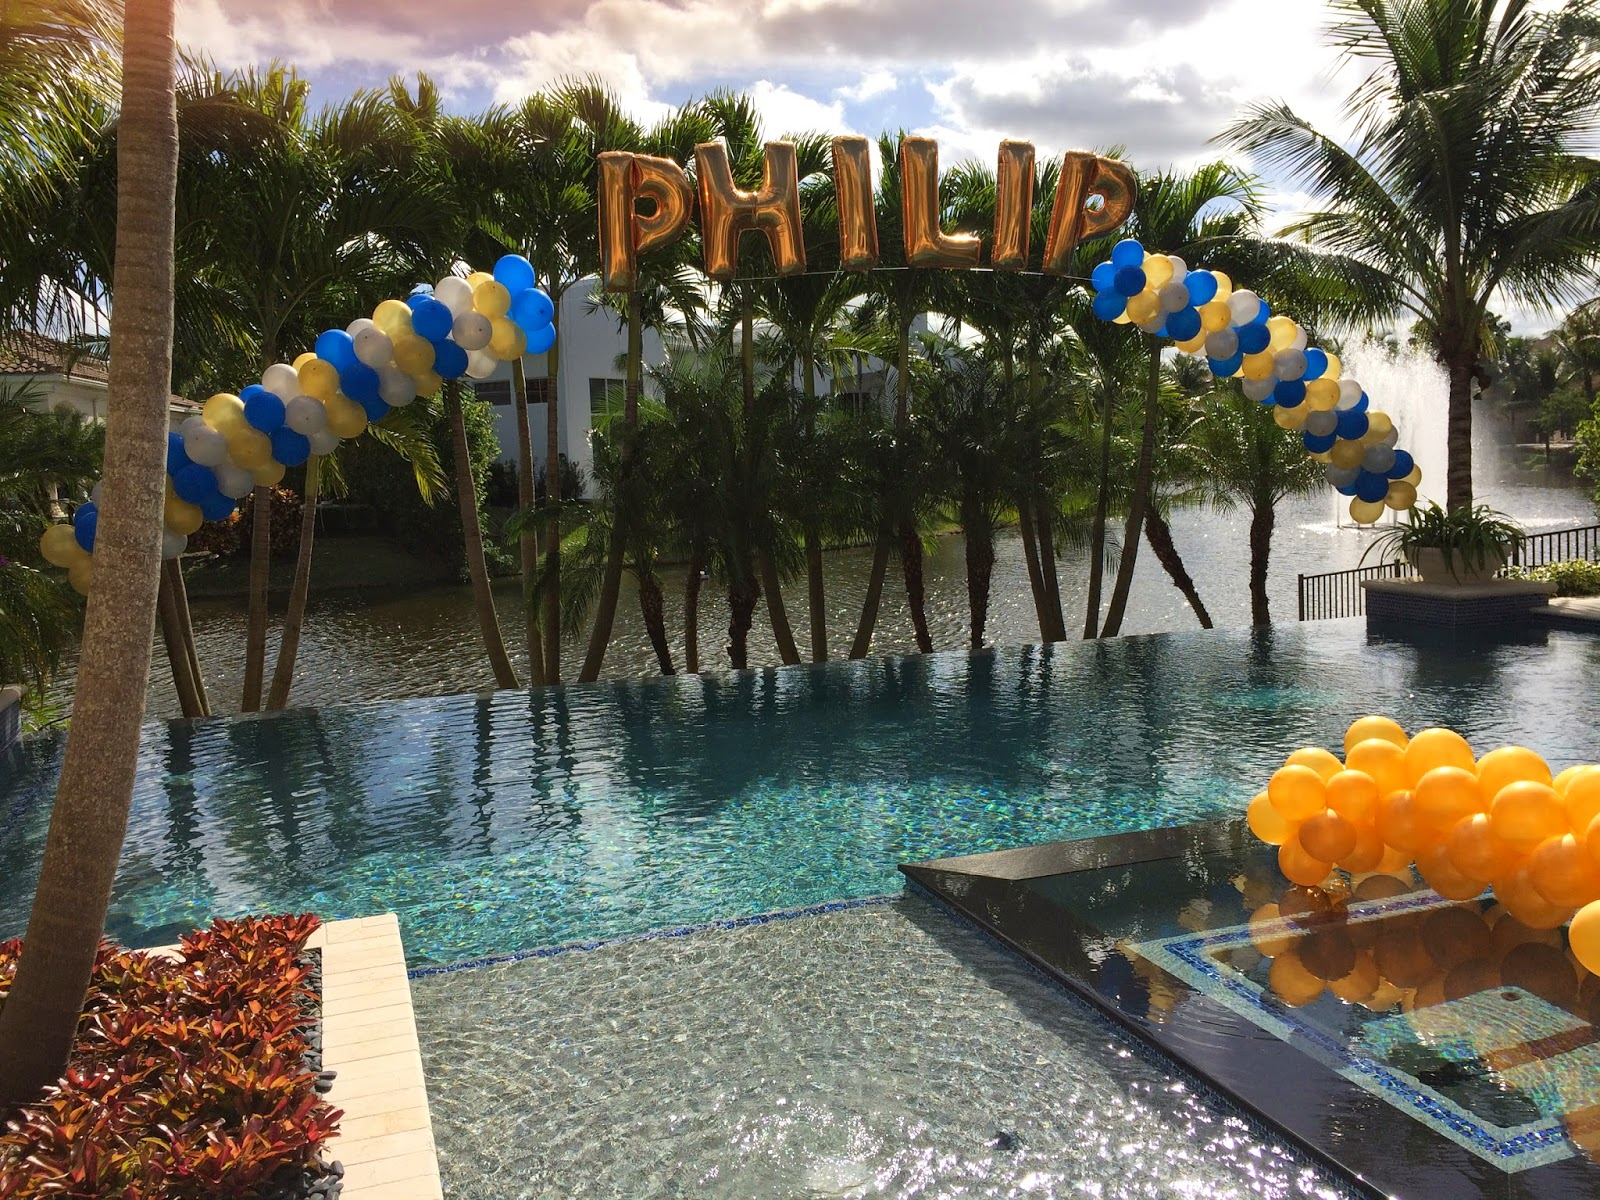 Balloon arch with name over swimming pool